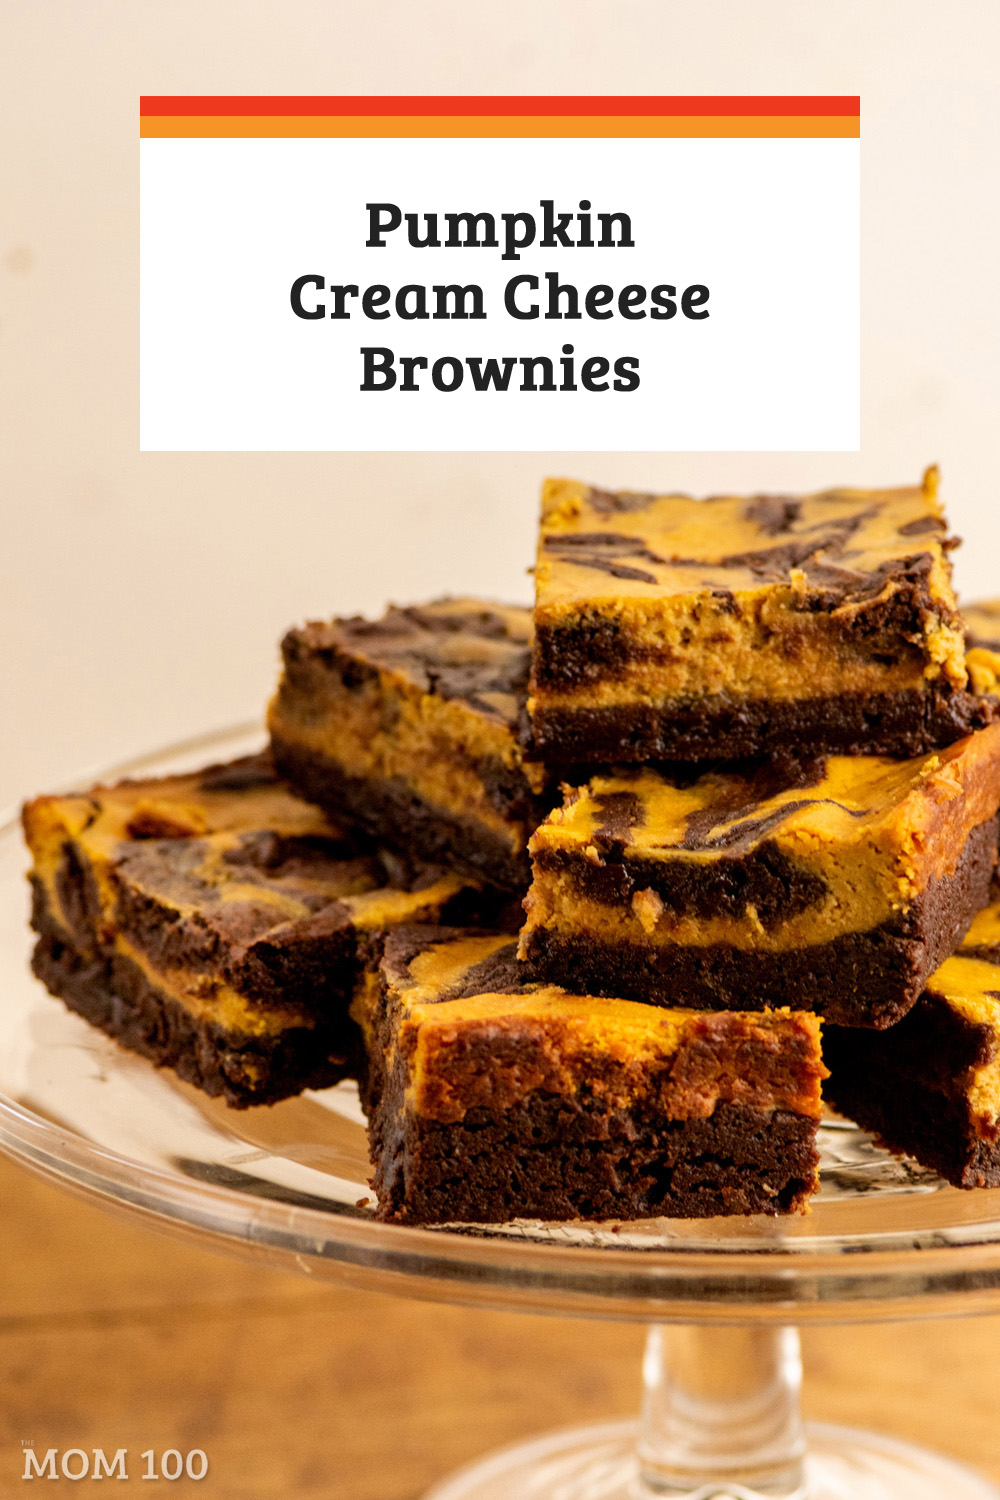 Pumpkin Cream Cheese Brownies—the bottom layer is a fudgy brownie; the top layer is a creamy pumpkin cheesecake, scented with those great fall spices.